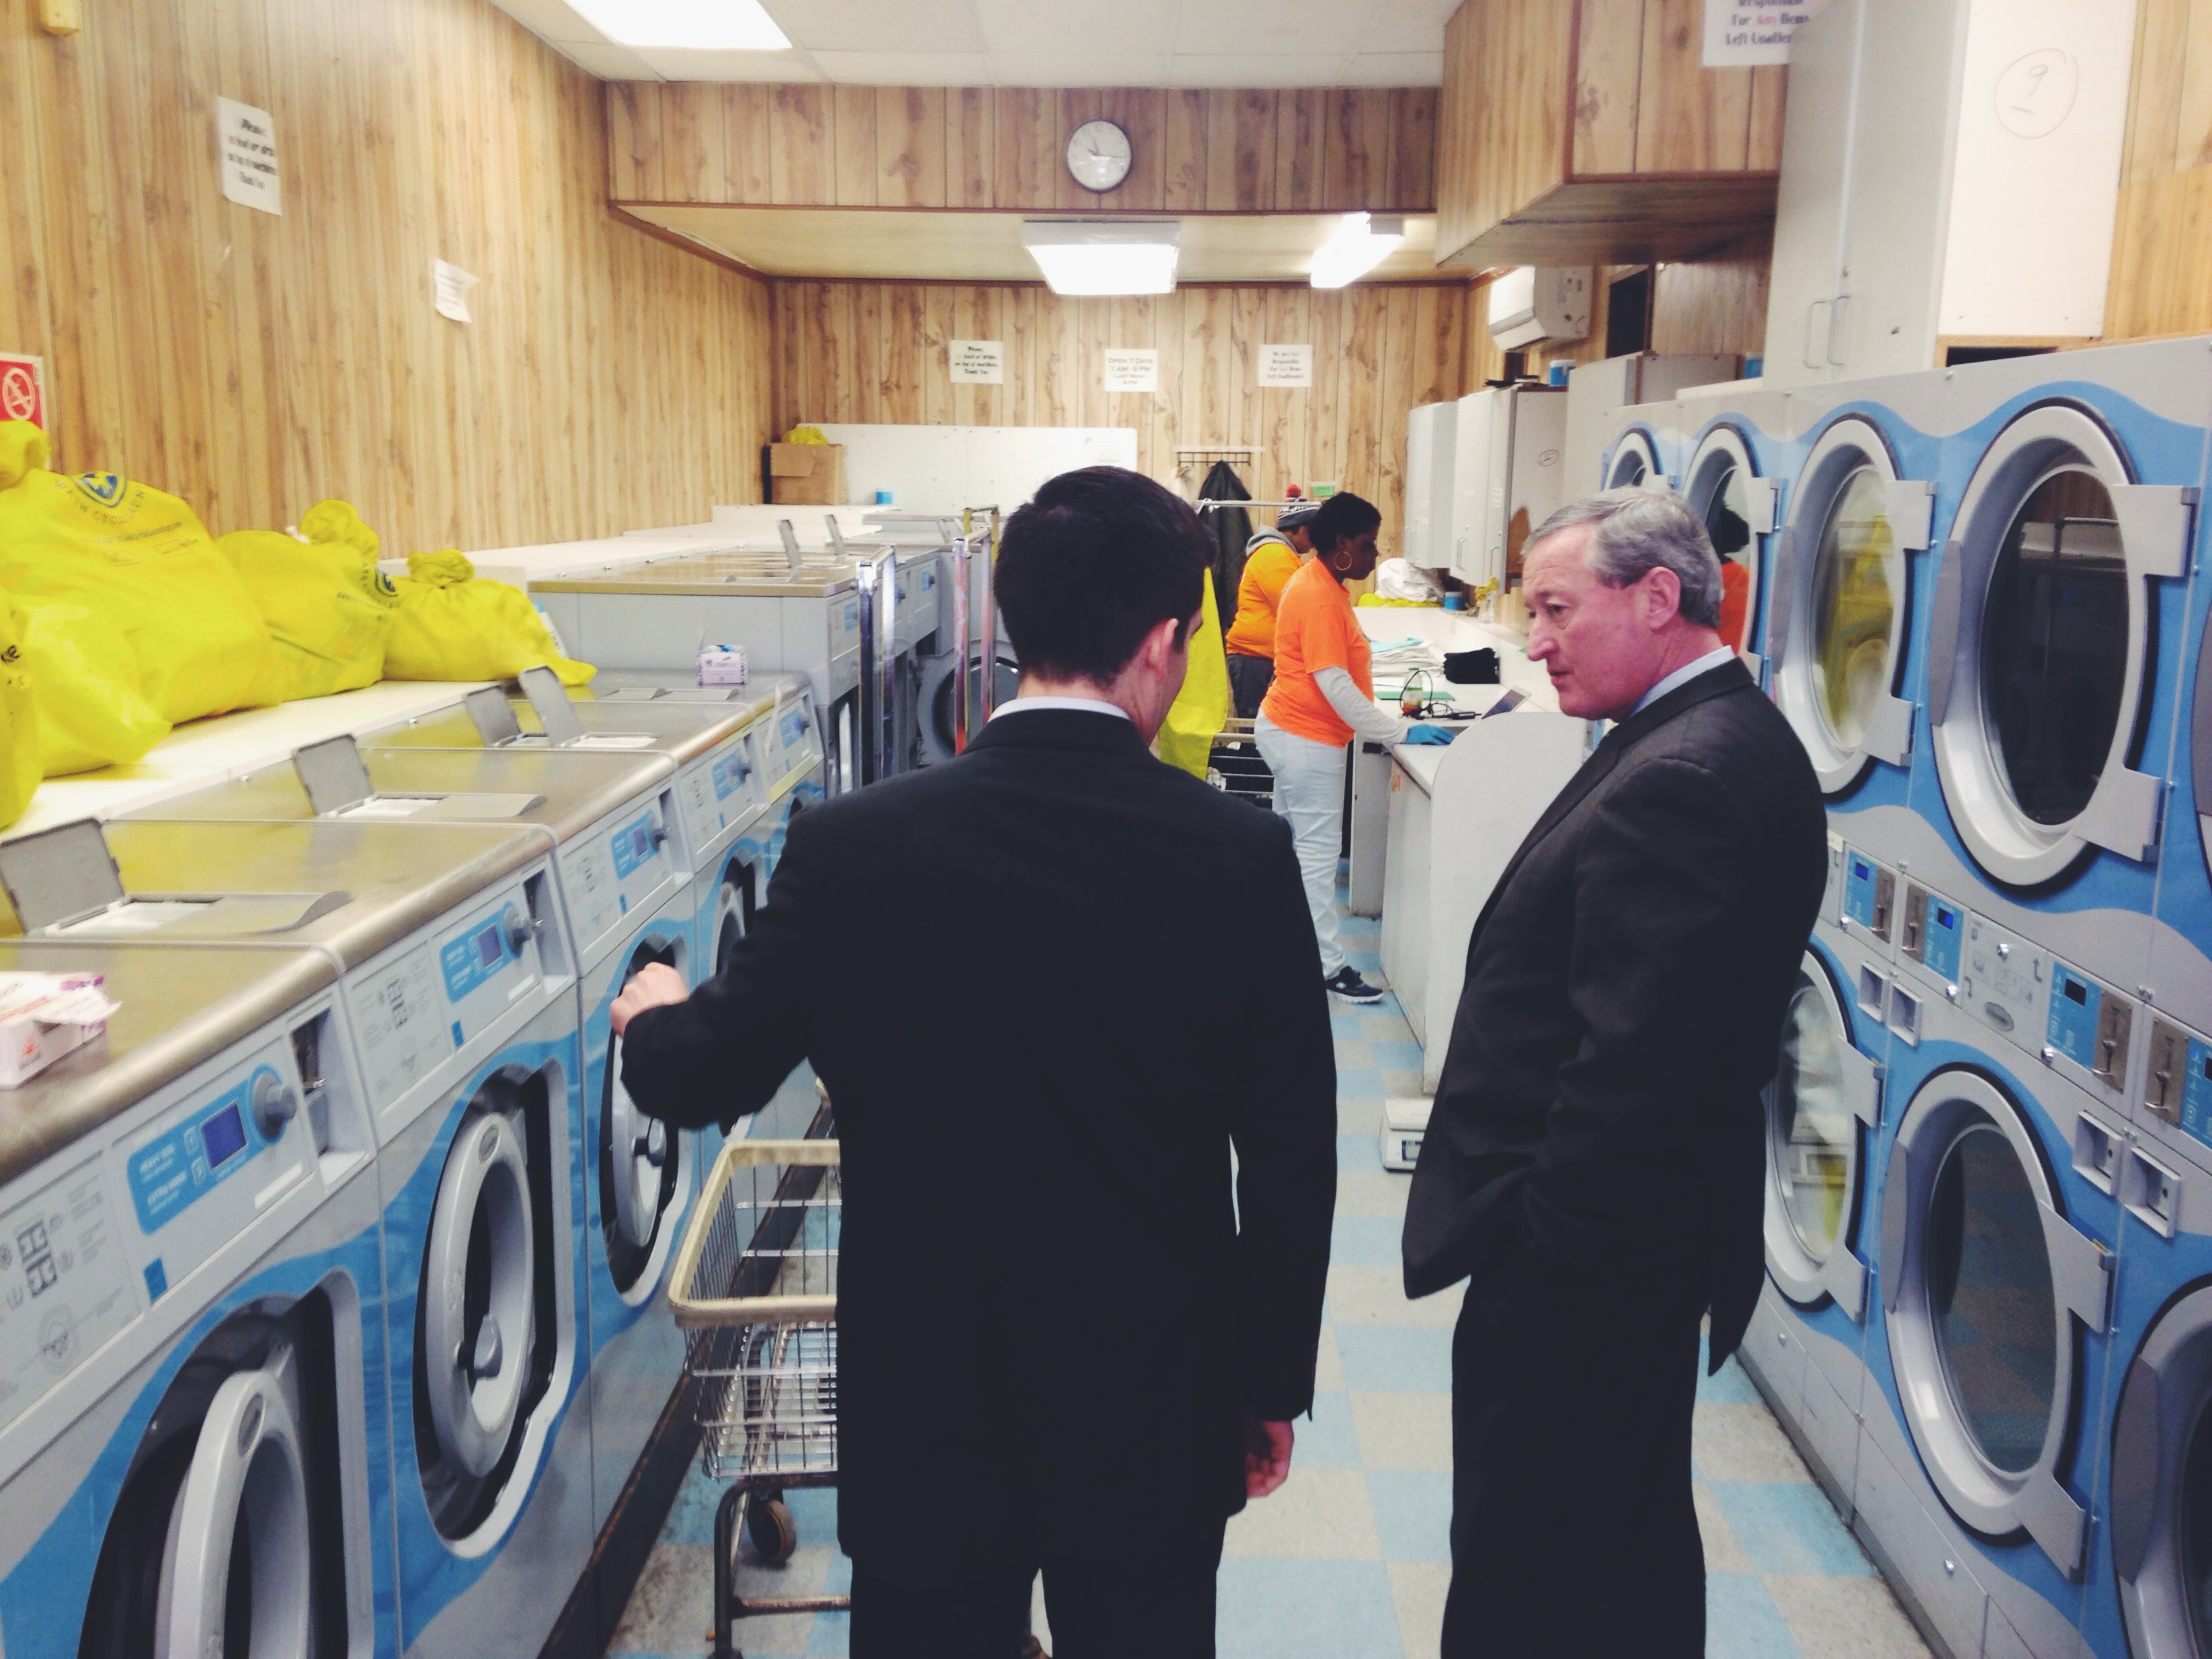 Jim Kenney at Wash Cycle Laundry